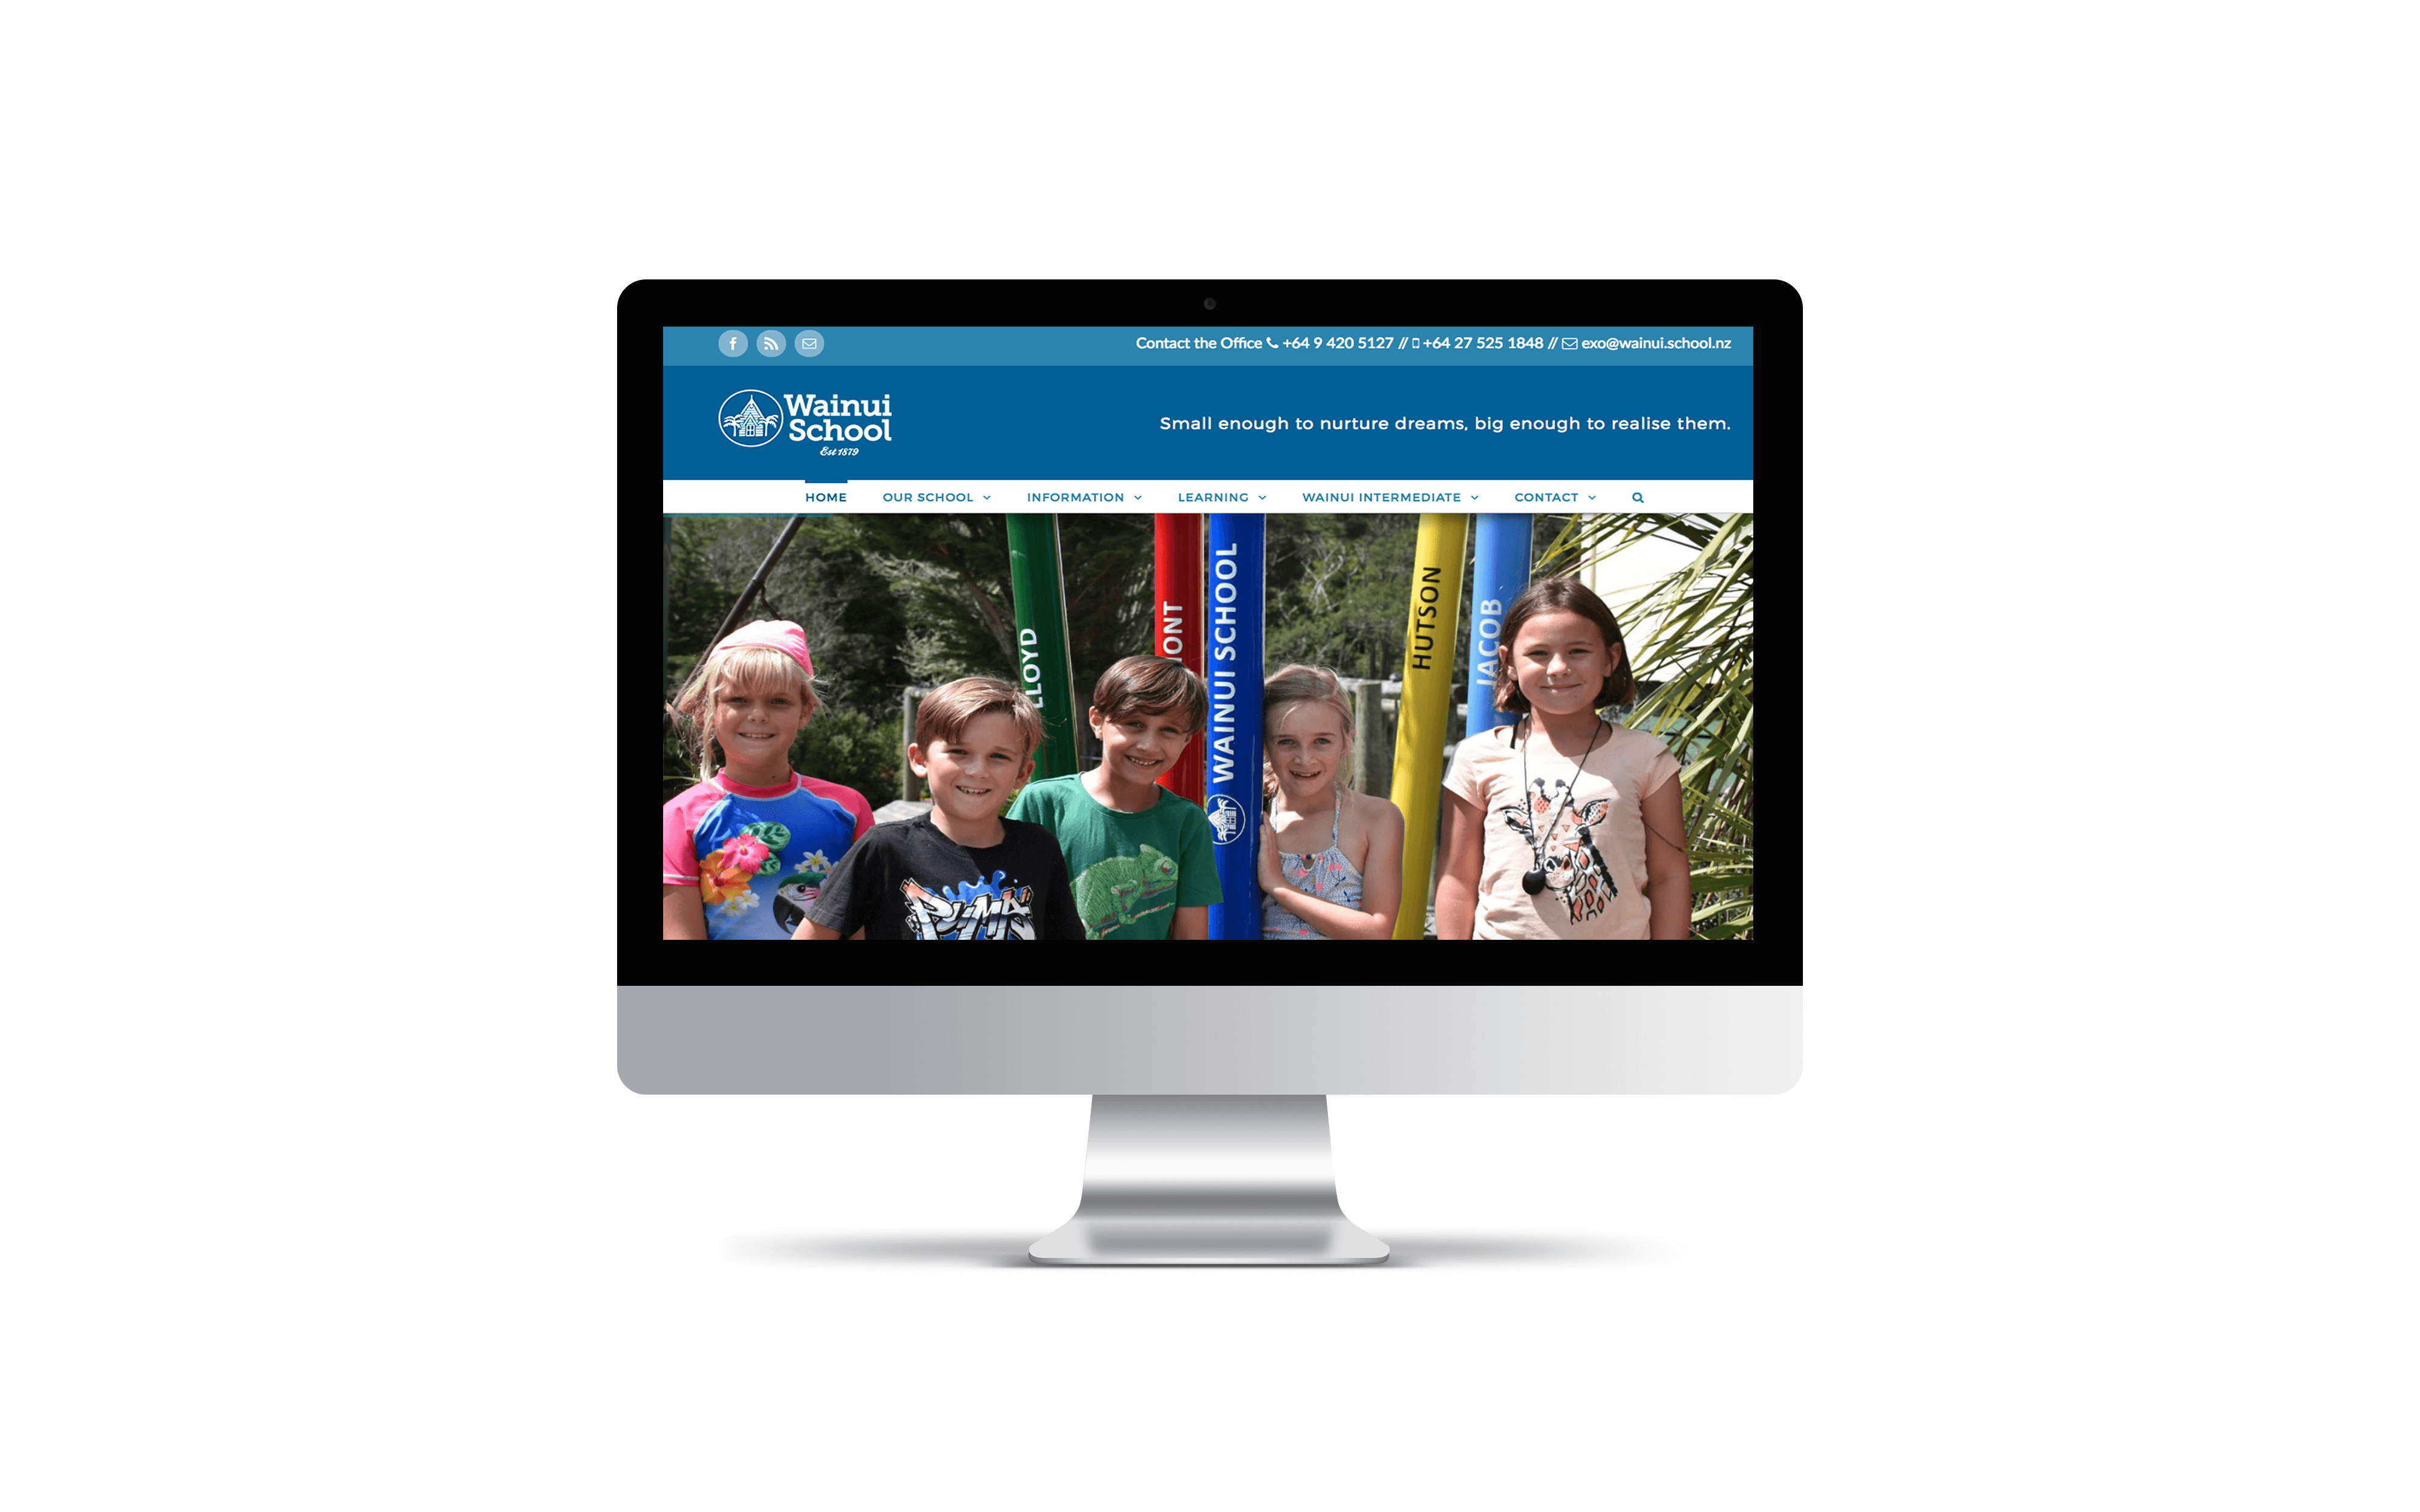 Website: Wainui School